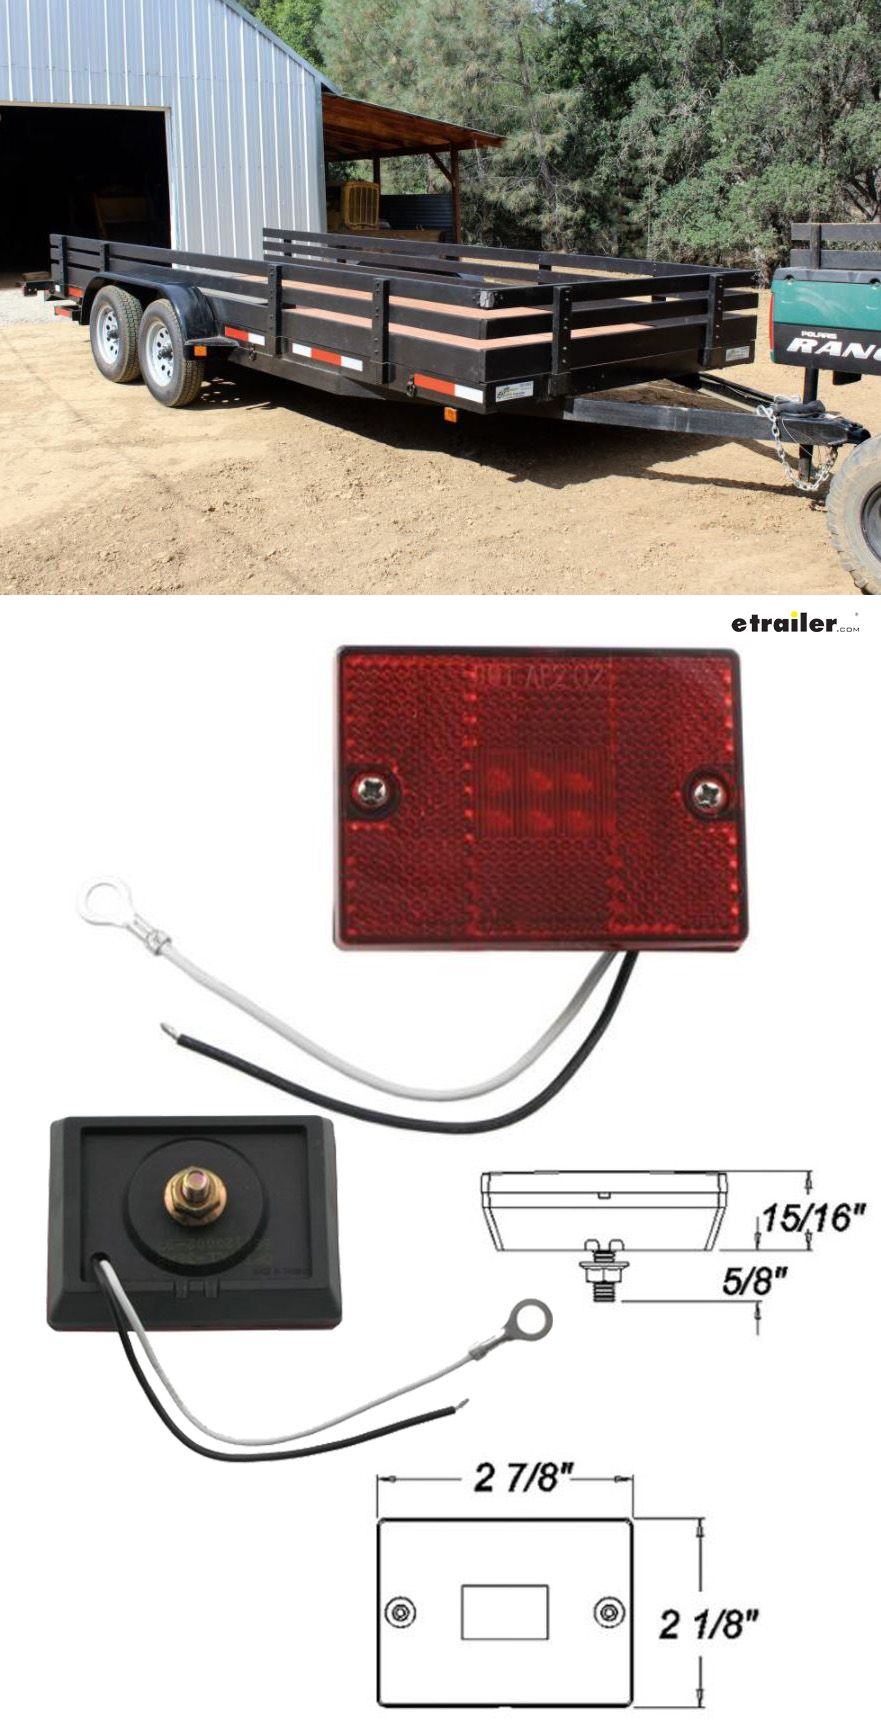 Optronics Led Trailer Clearance Or Side Marker Light W Reflector 6 Diodes Square Red Lens Opt Utility Trailer Led Trailer Lights Landscape Trailers